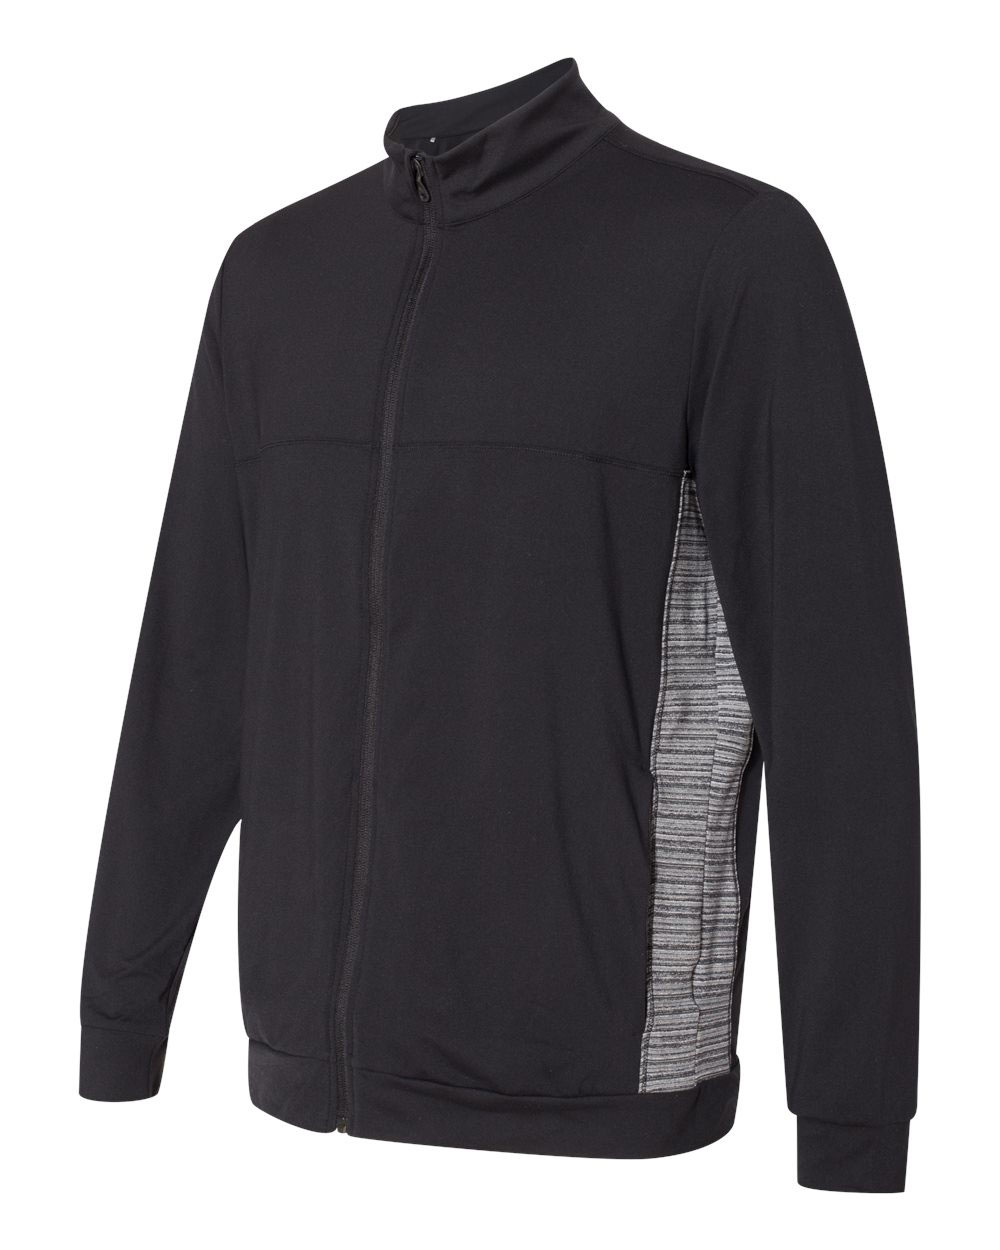 Adidas Mens Rangewear Full Zip Jacket